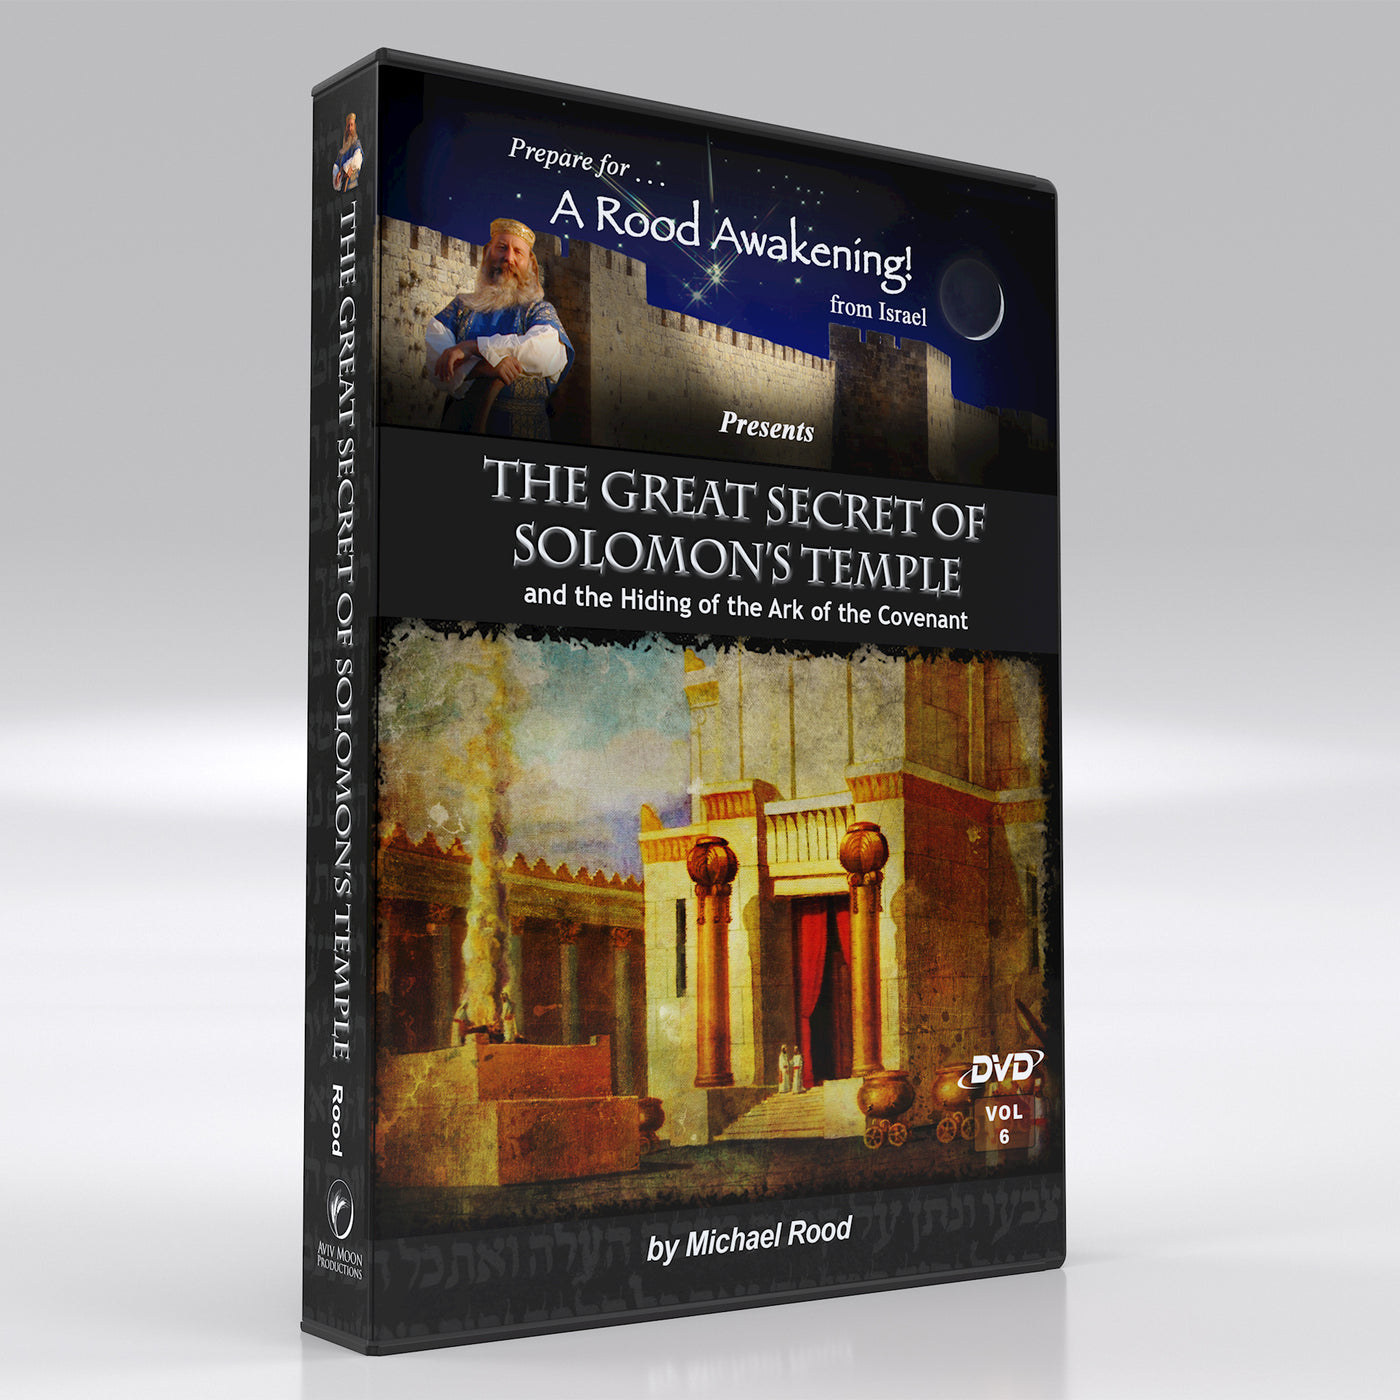 The Great Secret of Solomon's Temple (2 DVDs)